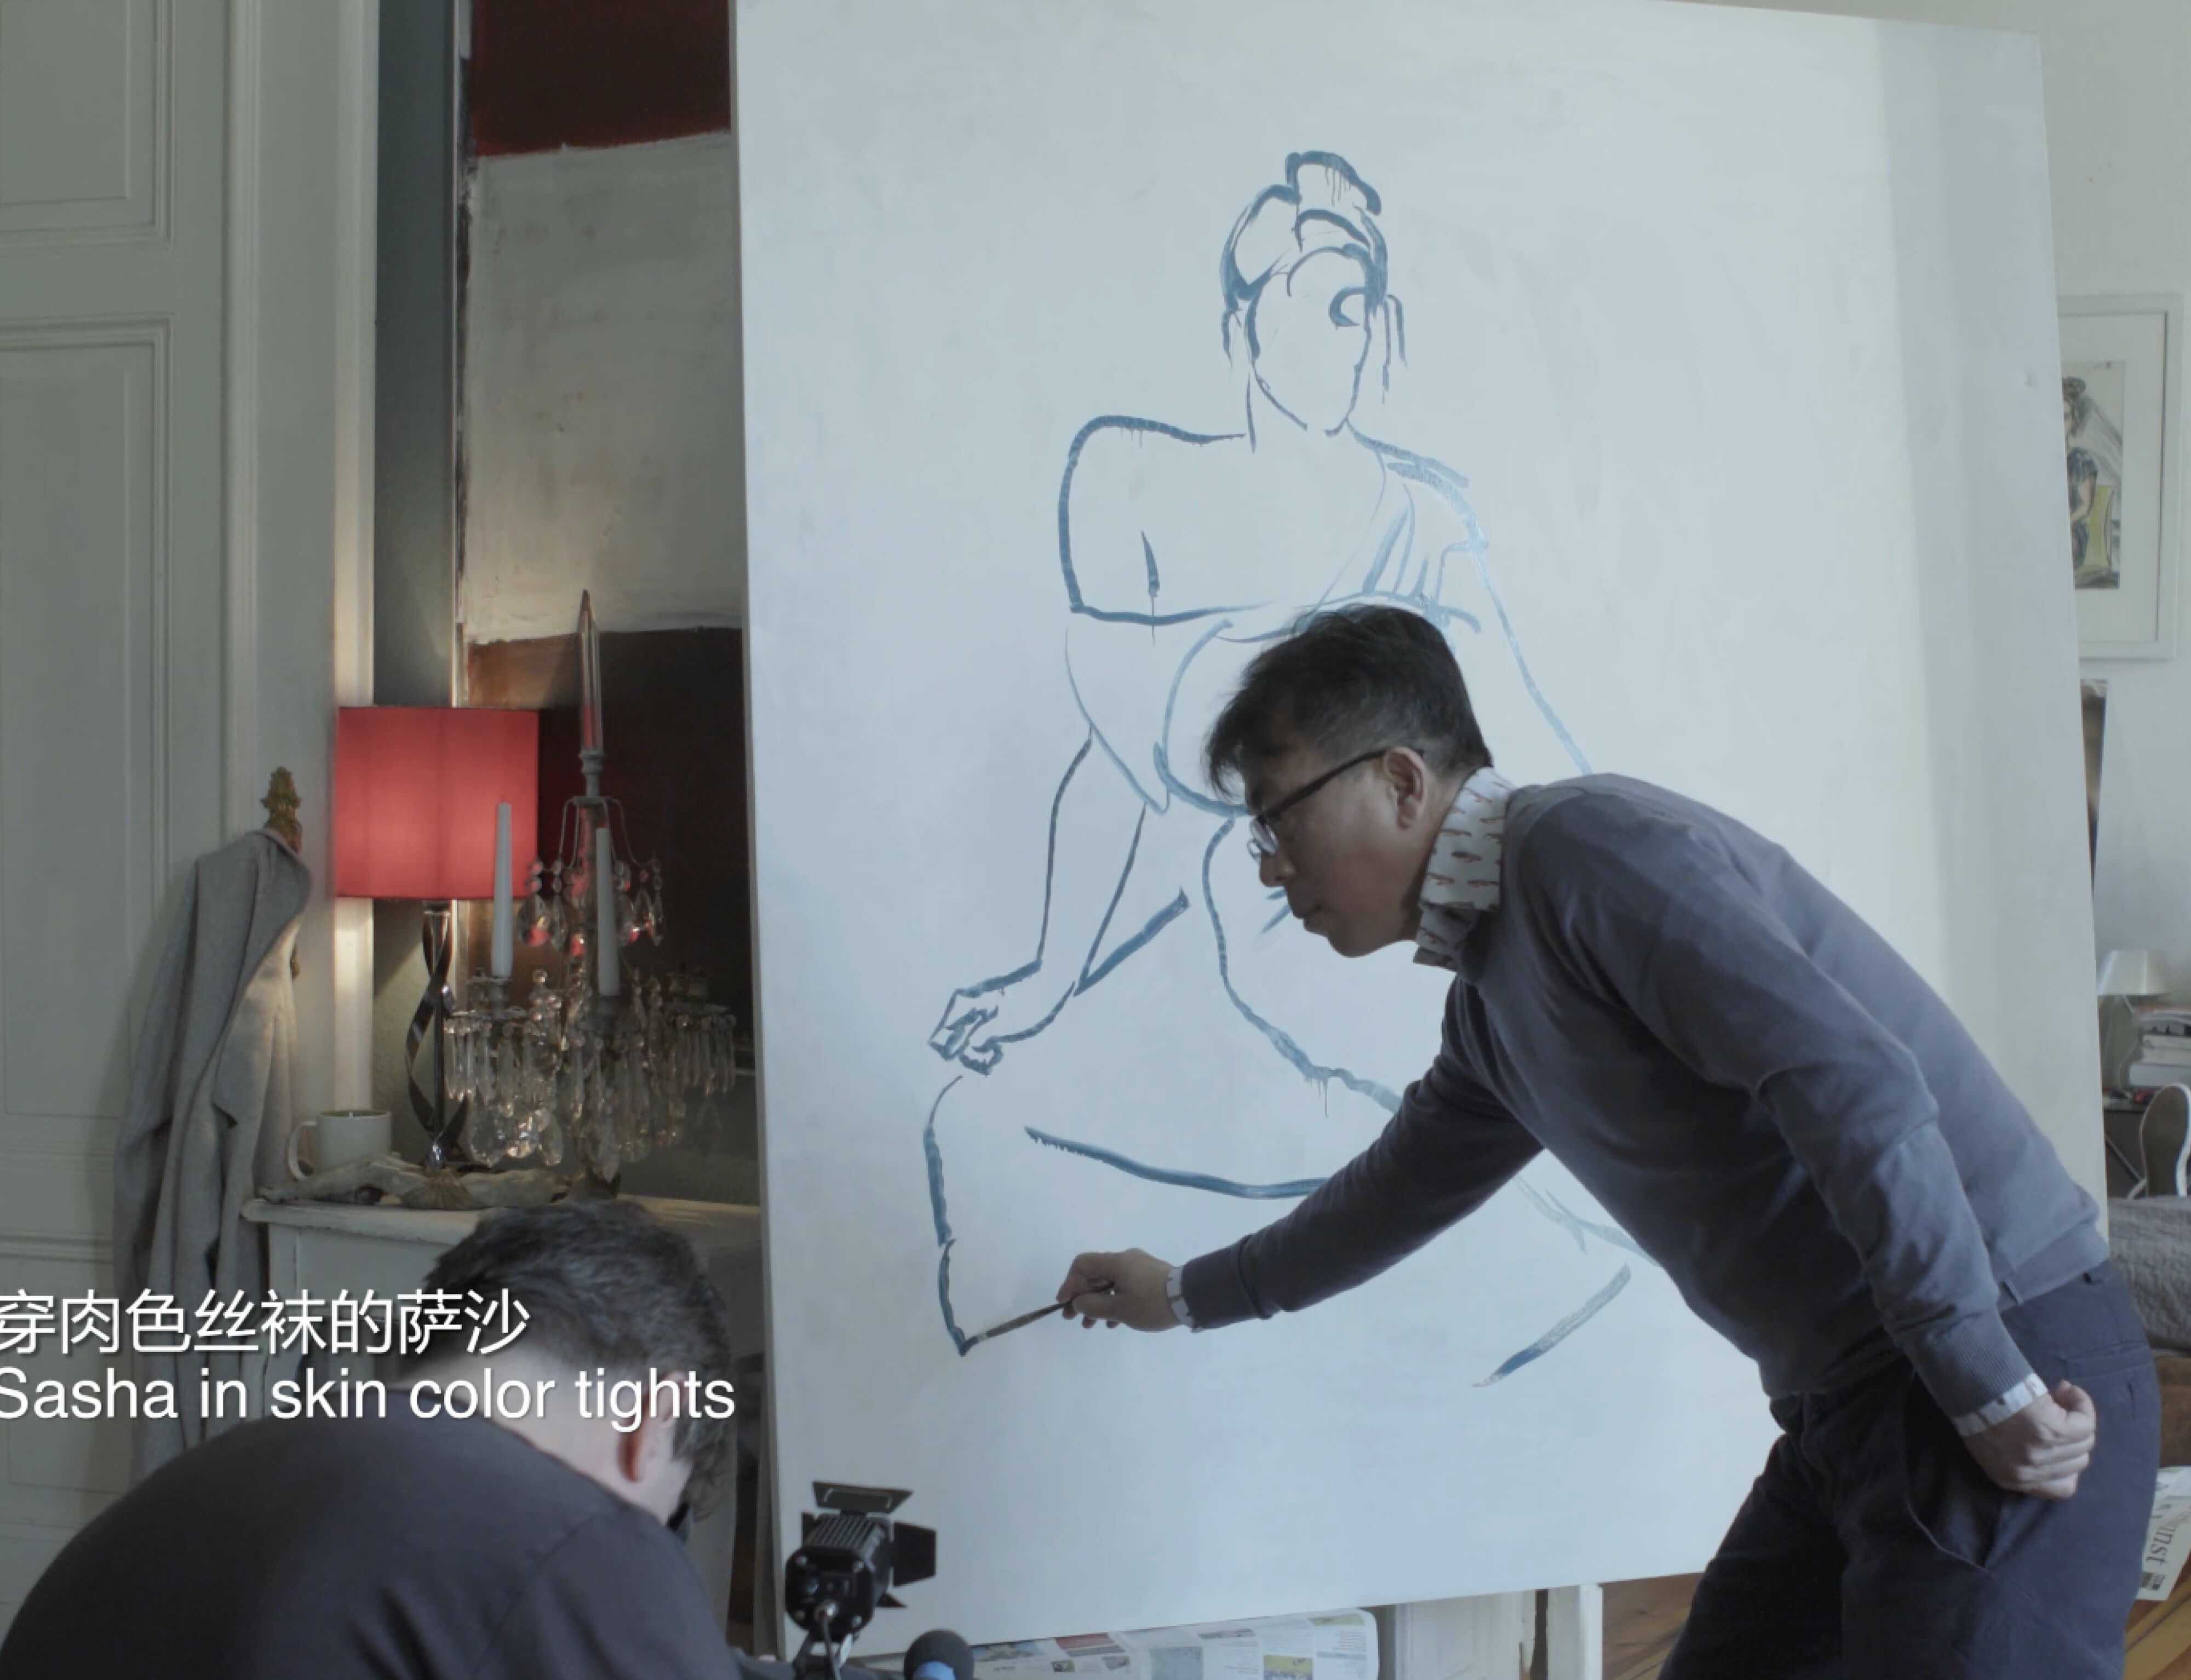 Watch now: The making of Liu Xiaodong's 'Sasha in skin coloured tights'